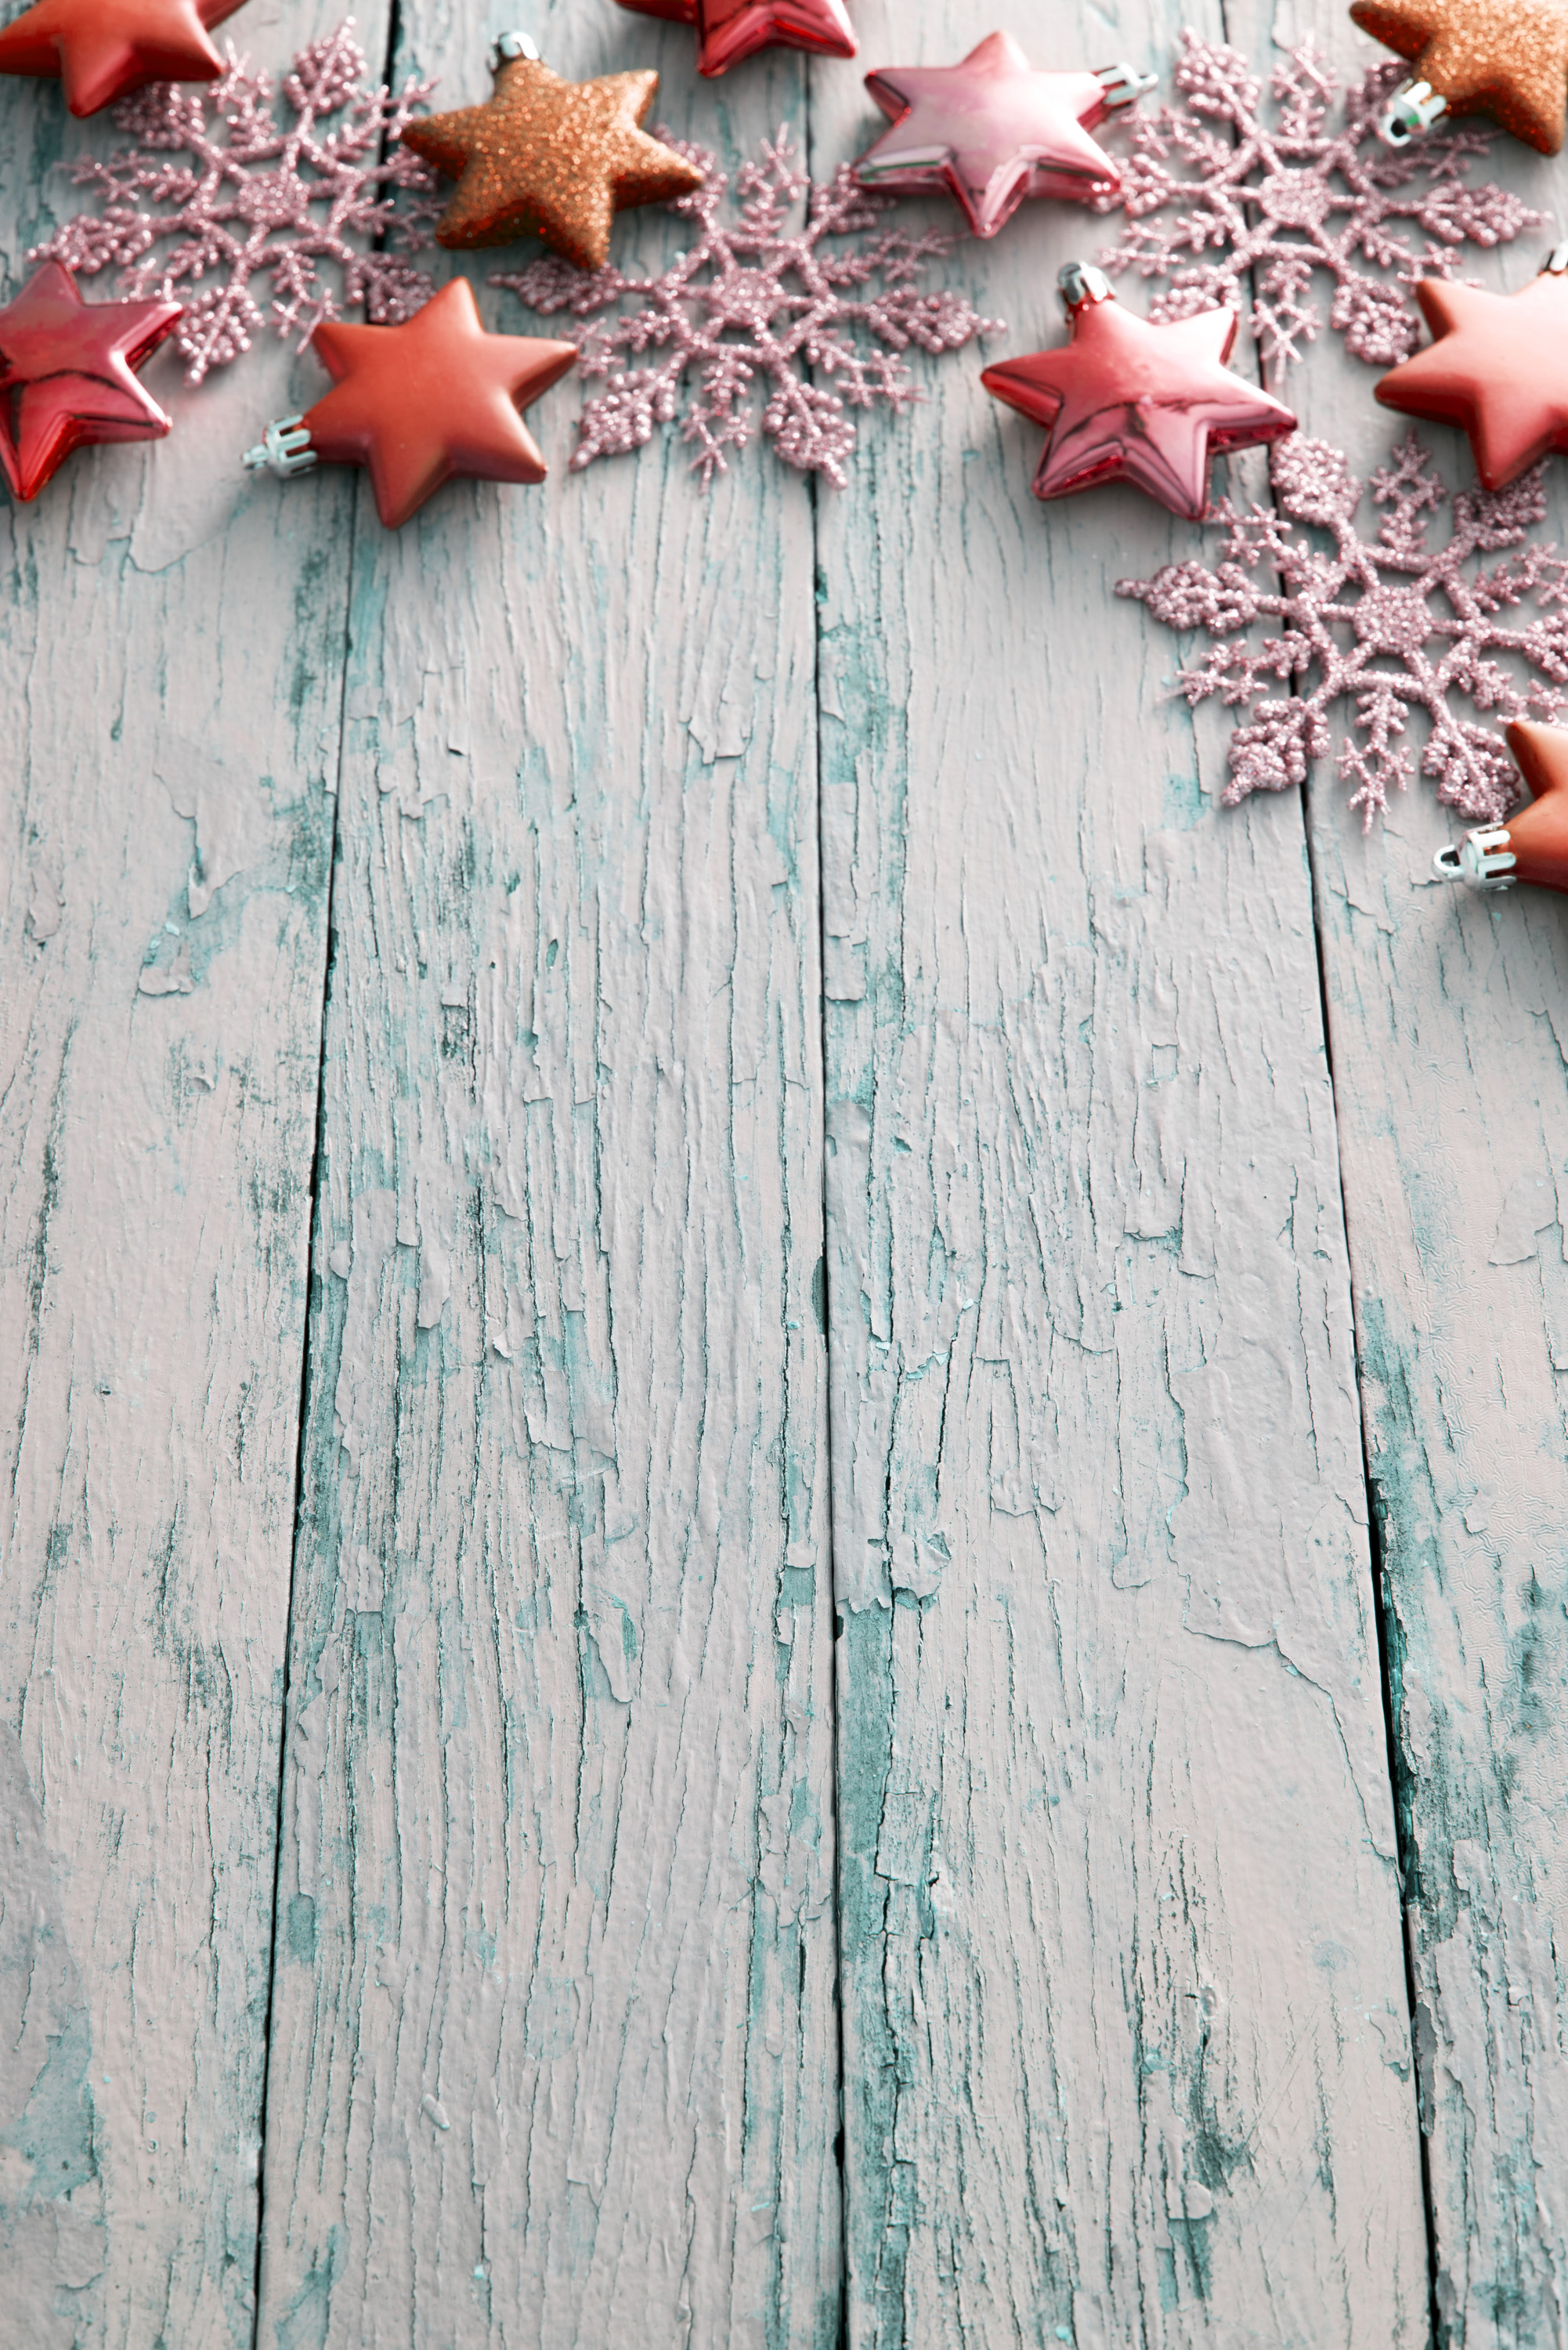 Rustic Christmas border of orange stars and snowflakes on blue textured weathered wood with copy space, oblique angle view